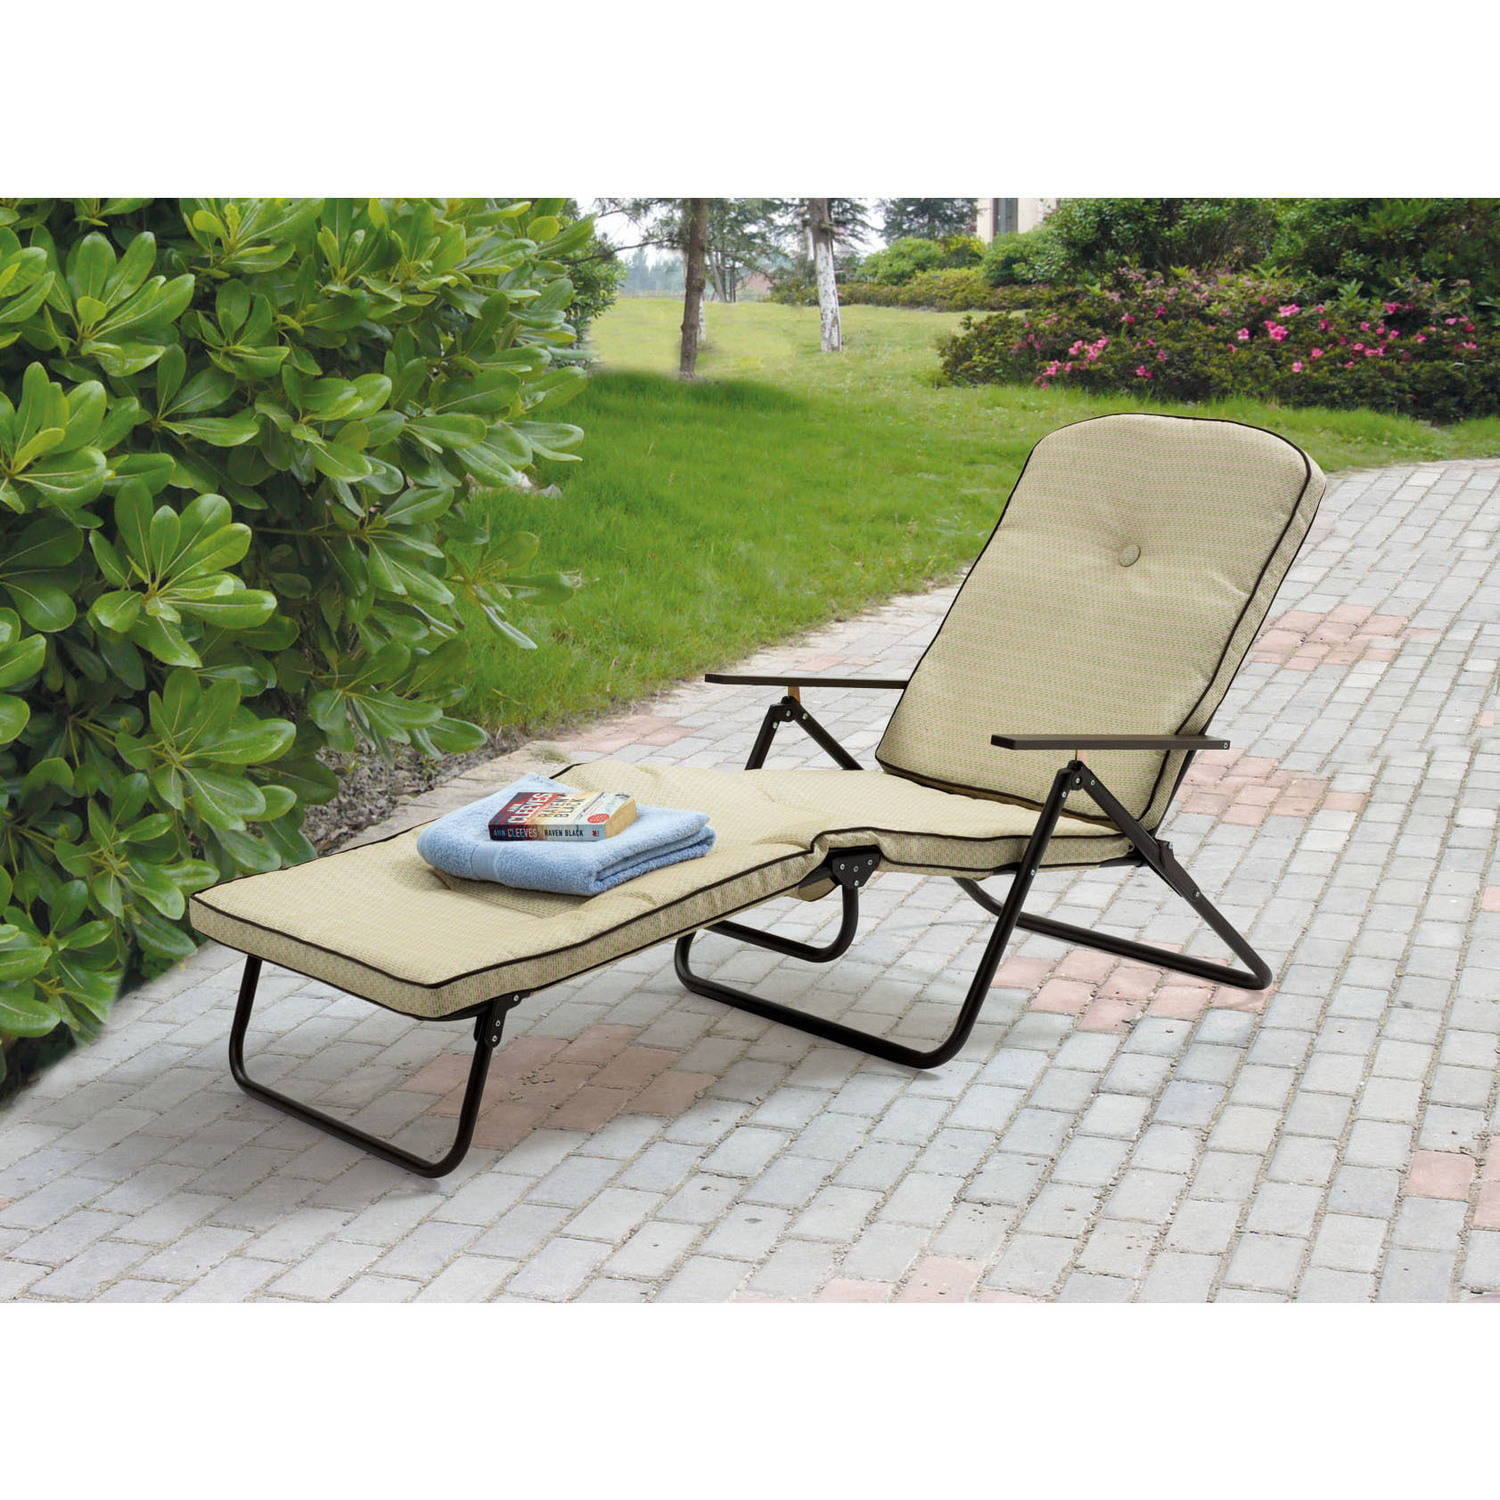 Strange Mainstays Sand Dune Outdoor Padded Folding Chaise Lounge Tan Walmart Com Unemploymentrelief Wooden Chair Designs For Living Room Unemploymentrelieforg